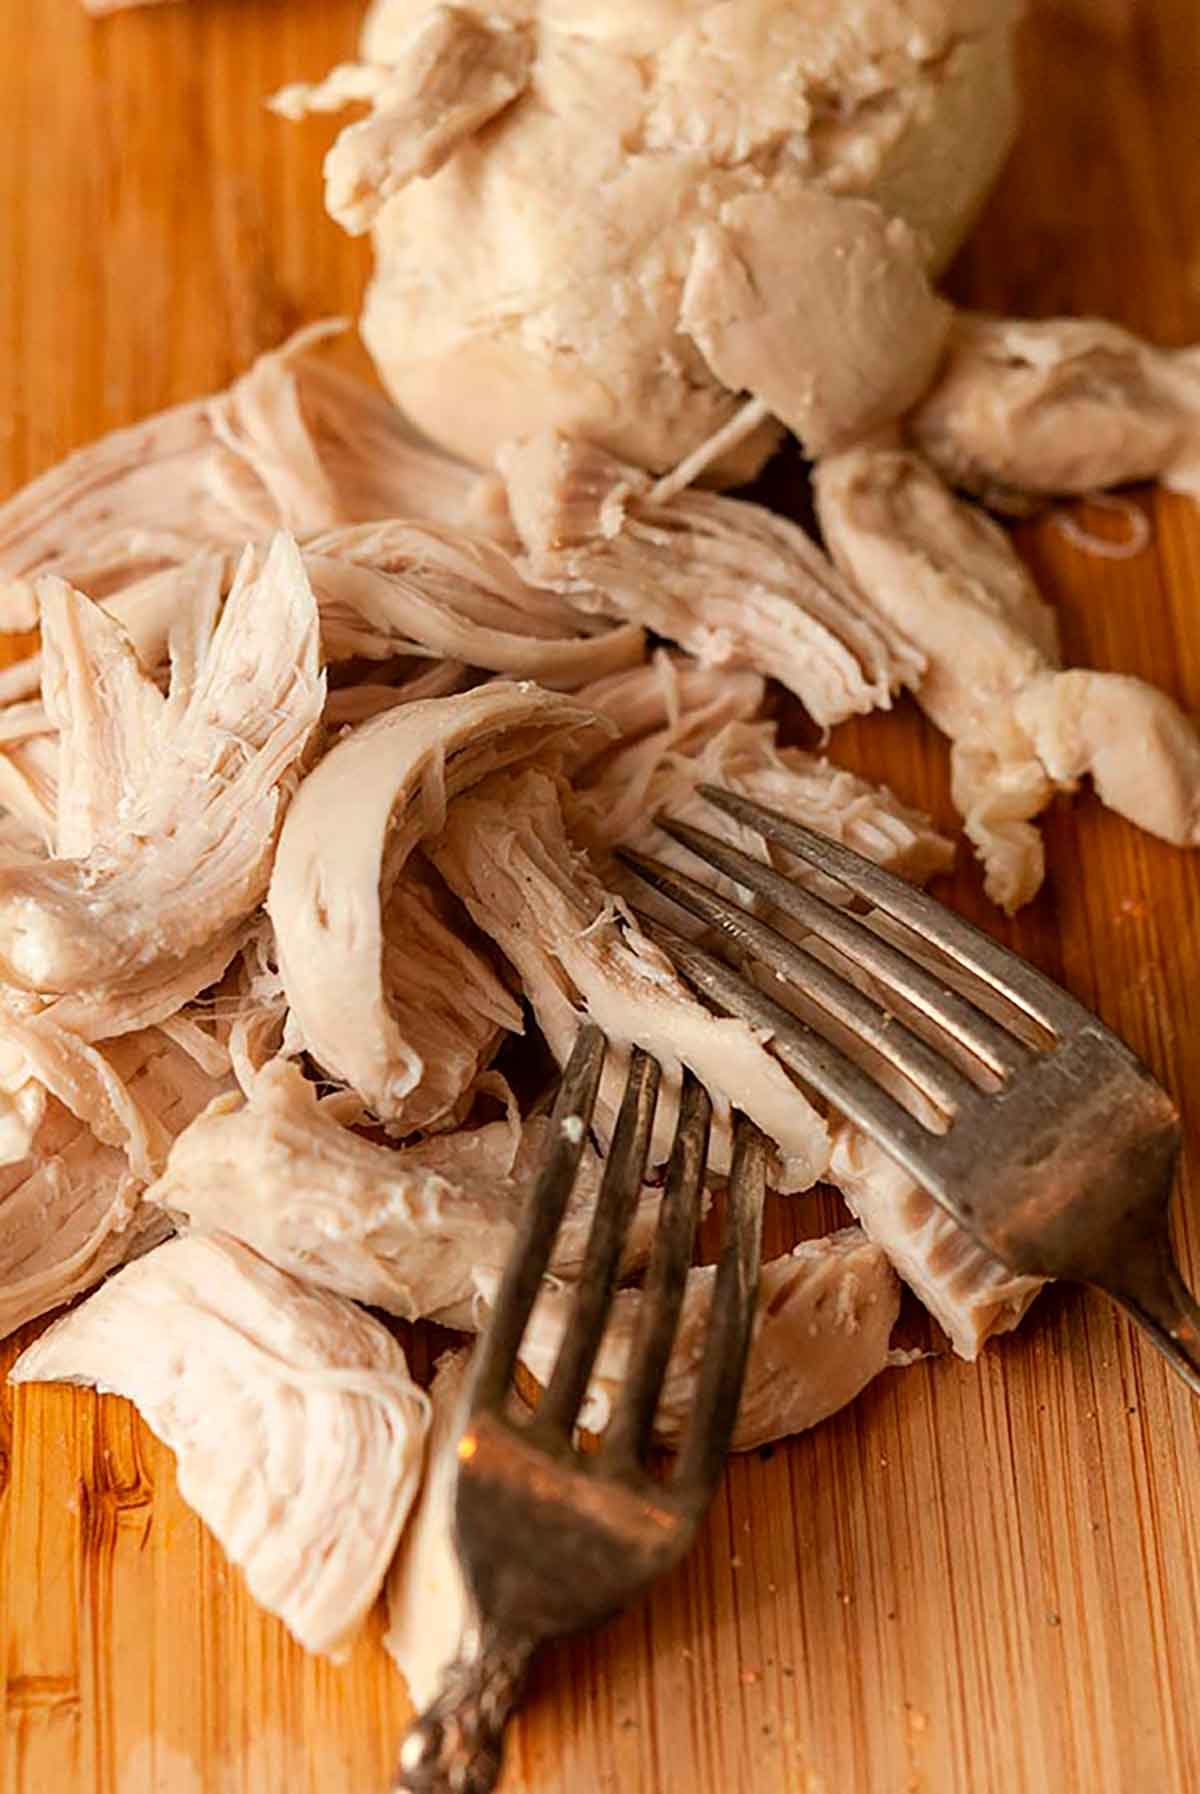 2 forks pulling apart cooked chicken on a cutting board.